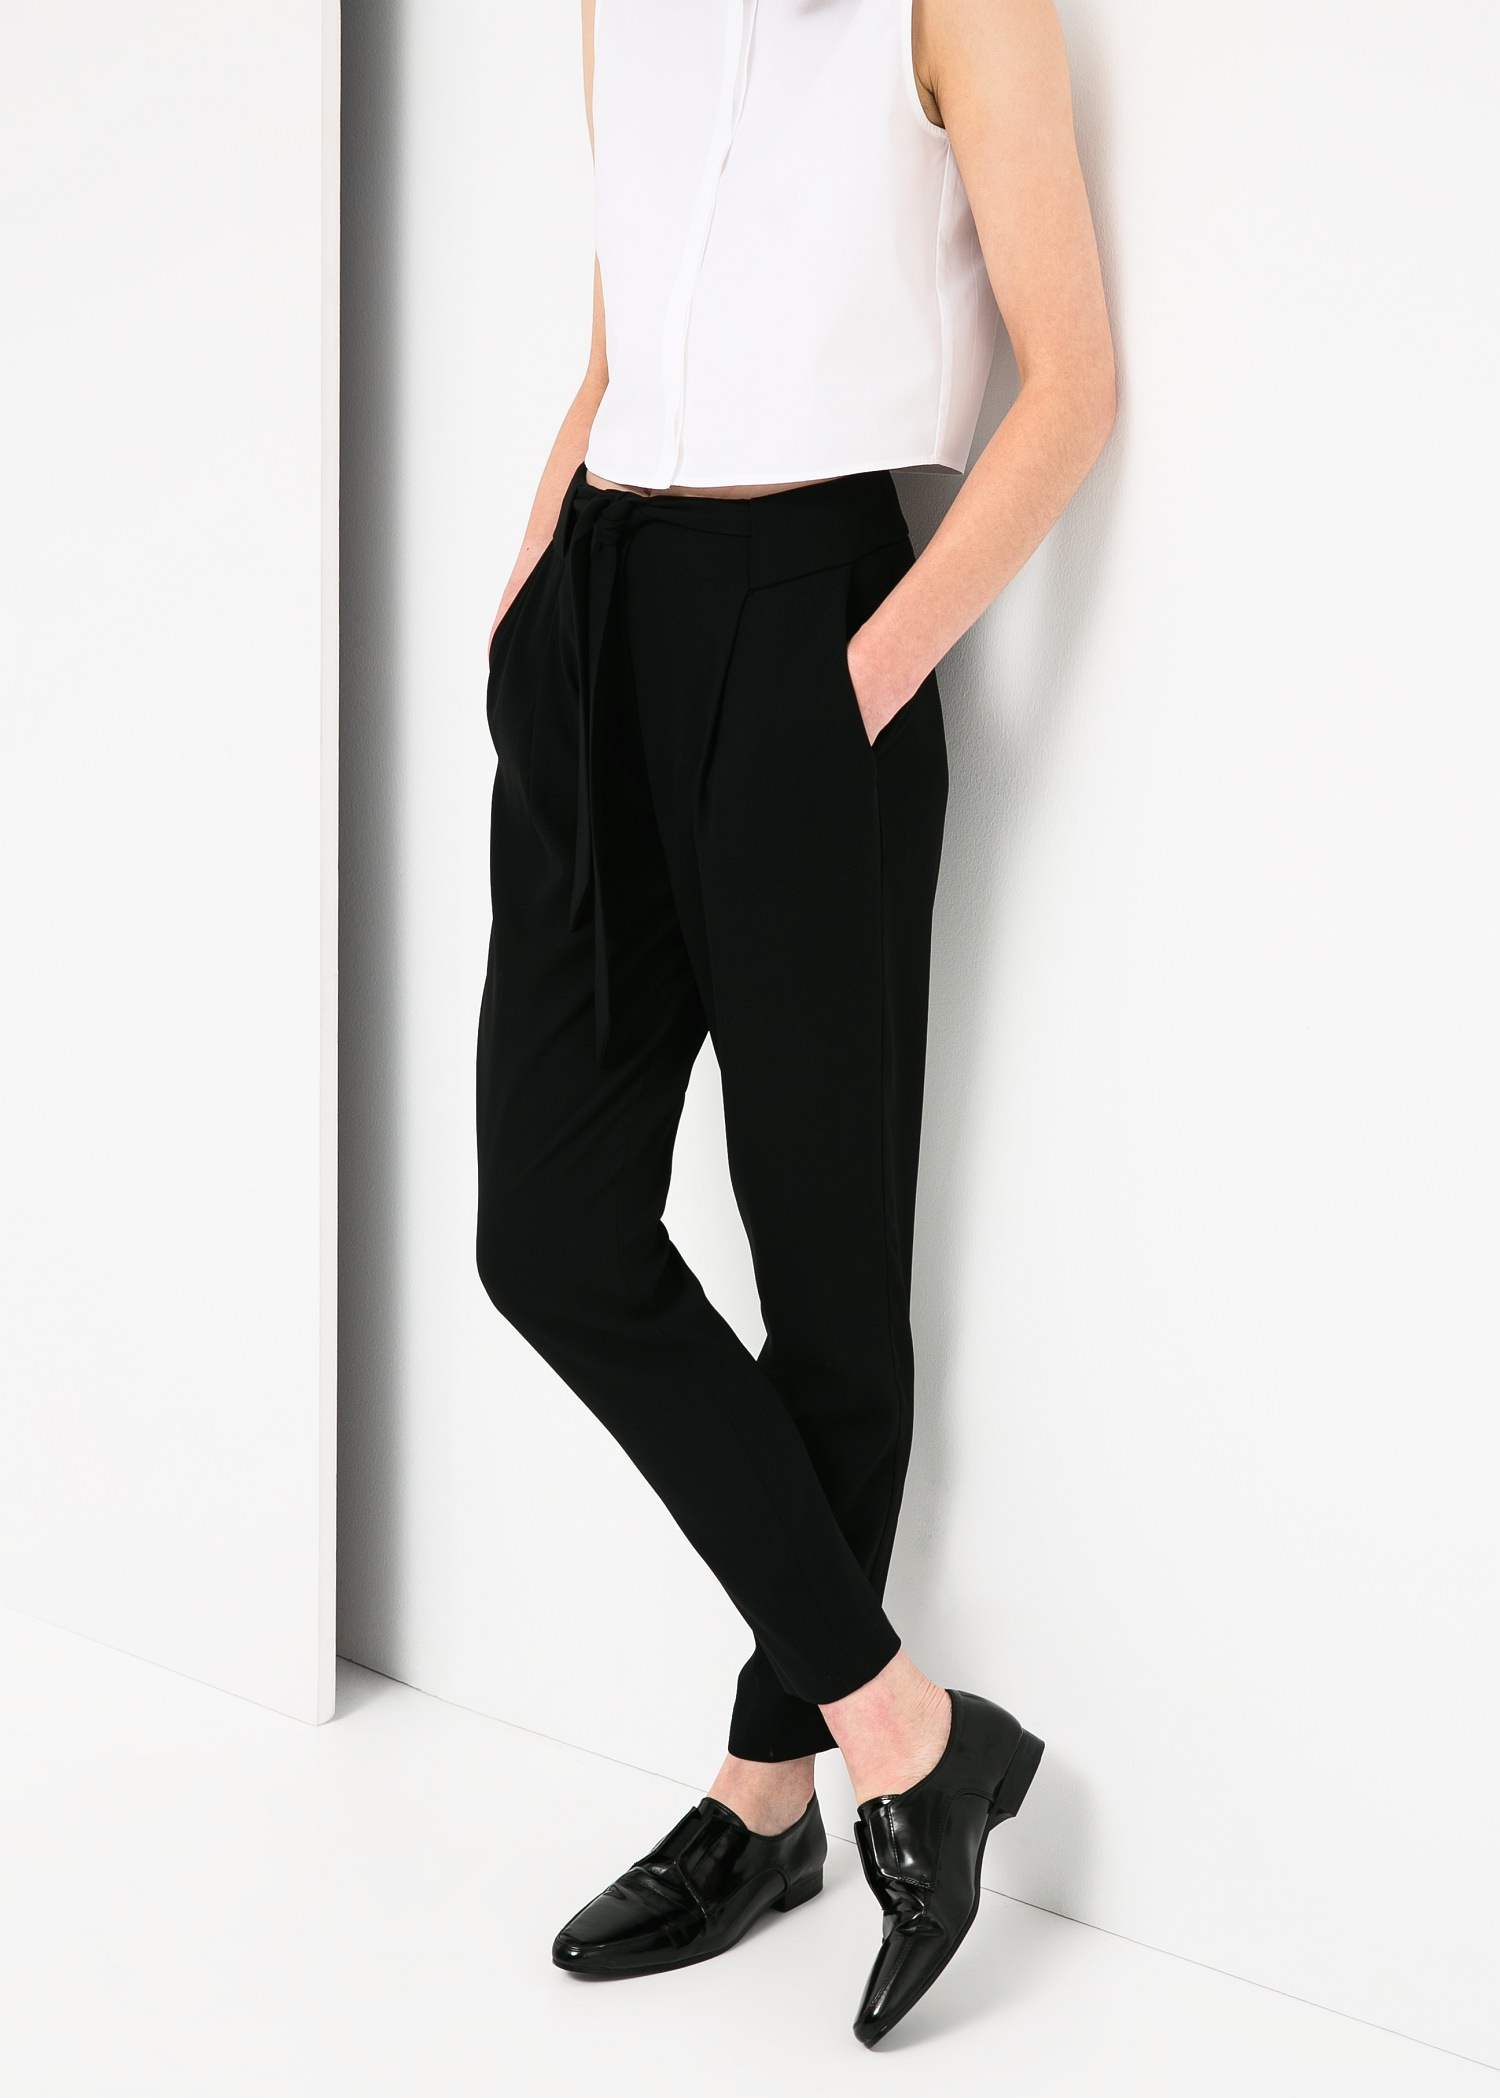 Bow crepe trousers - Trousers for Women | MANGO